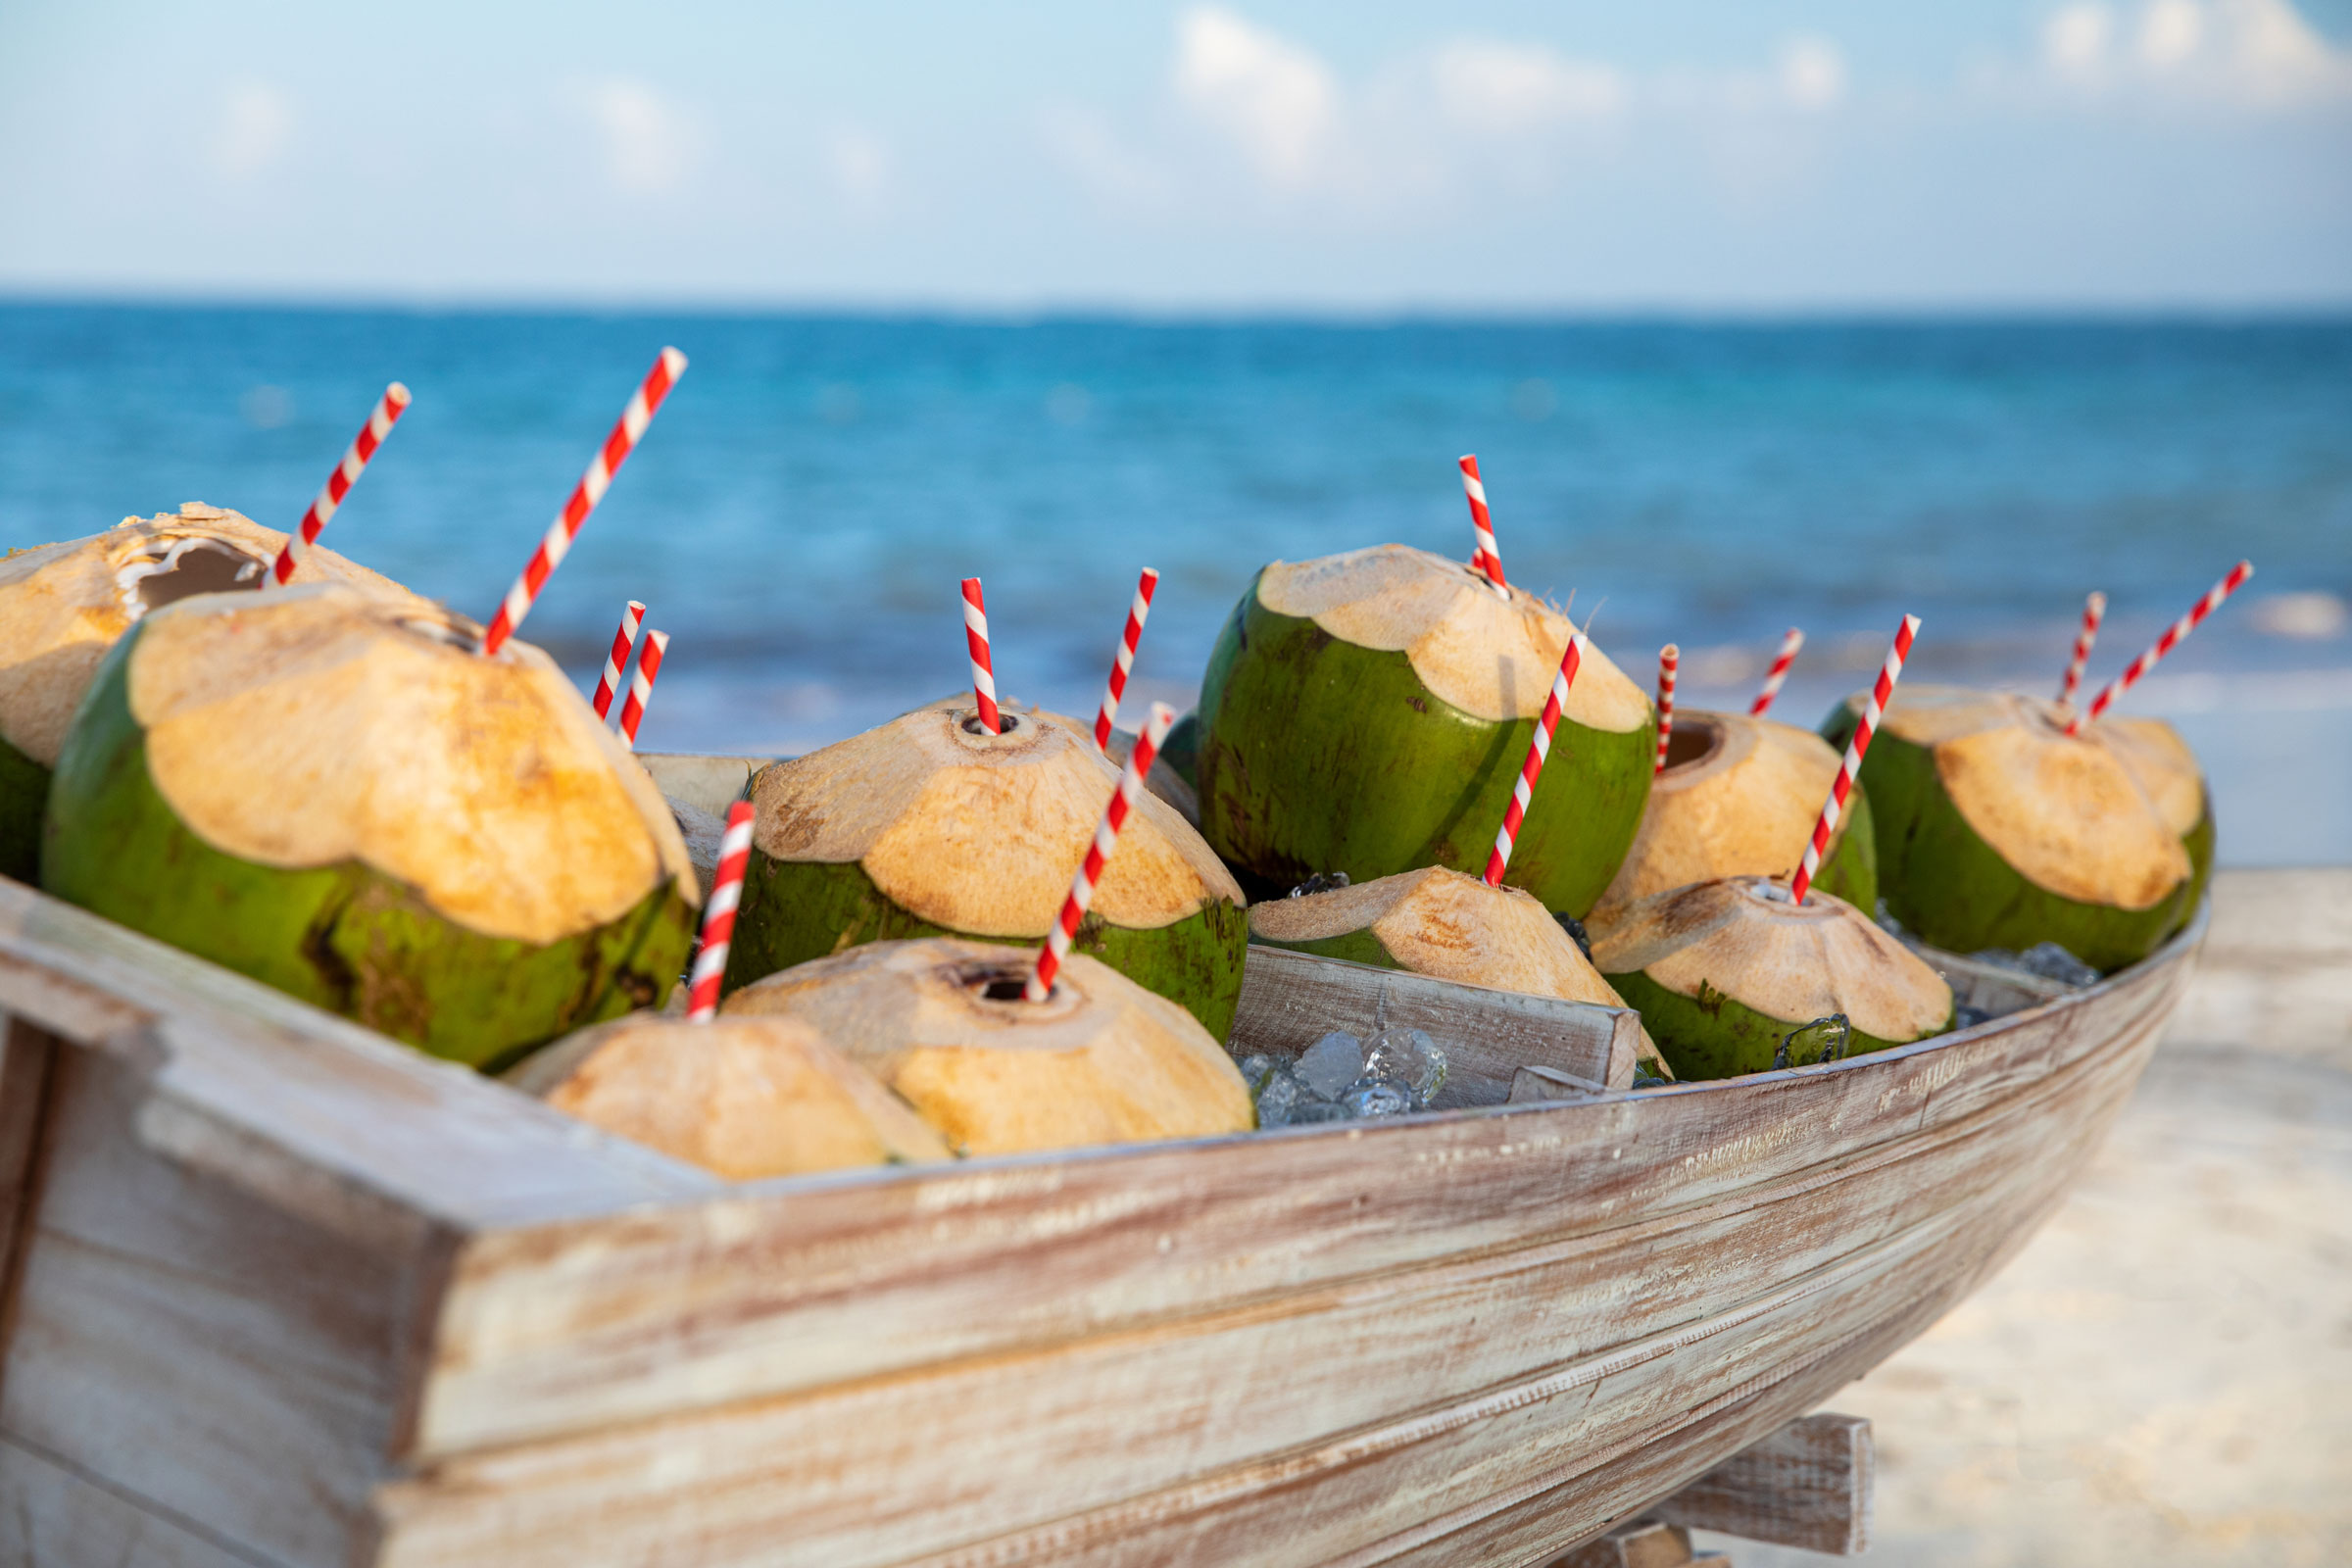 Coconut Drinks on the Beach